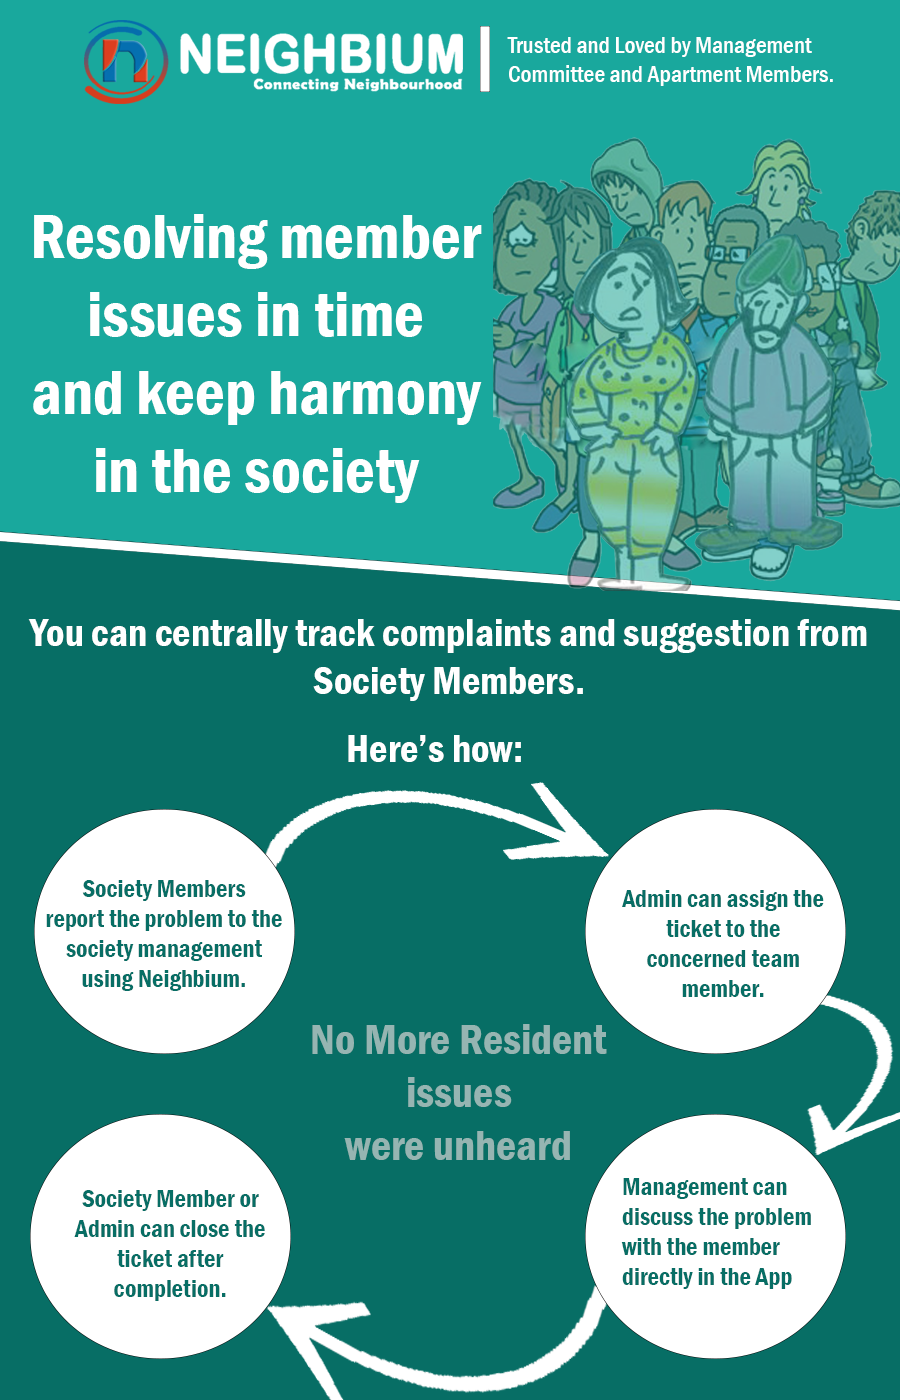 Resolve members issue in time and keep harmony in the society